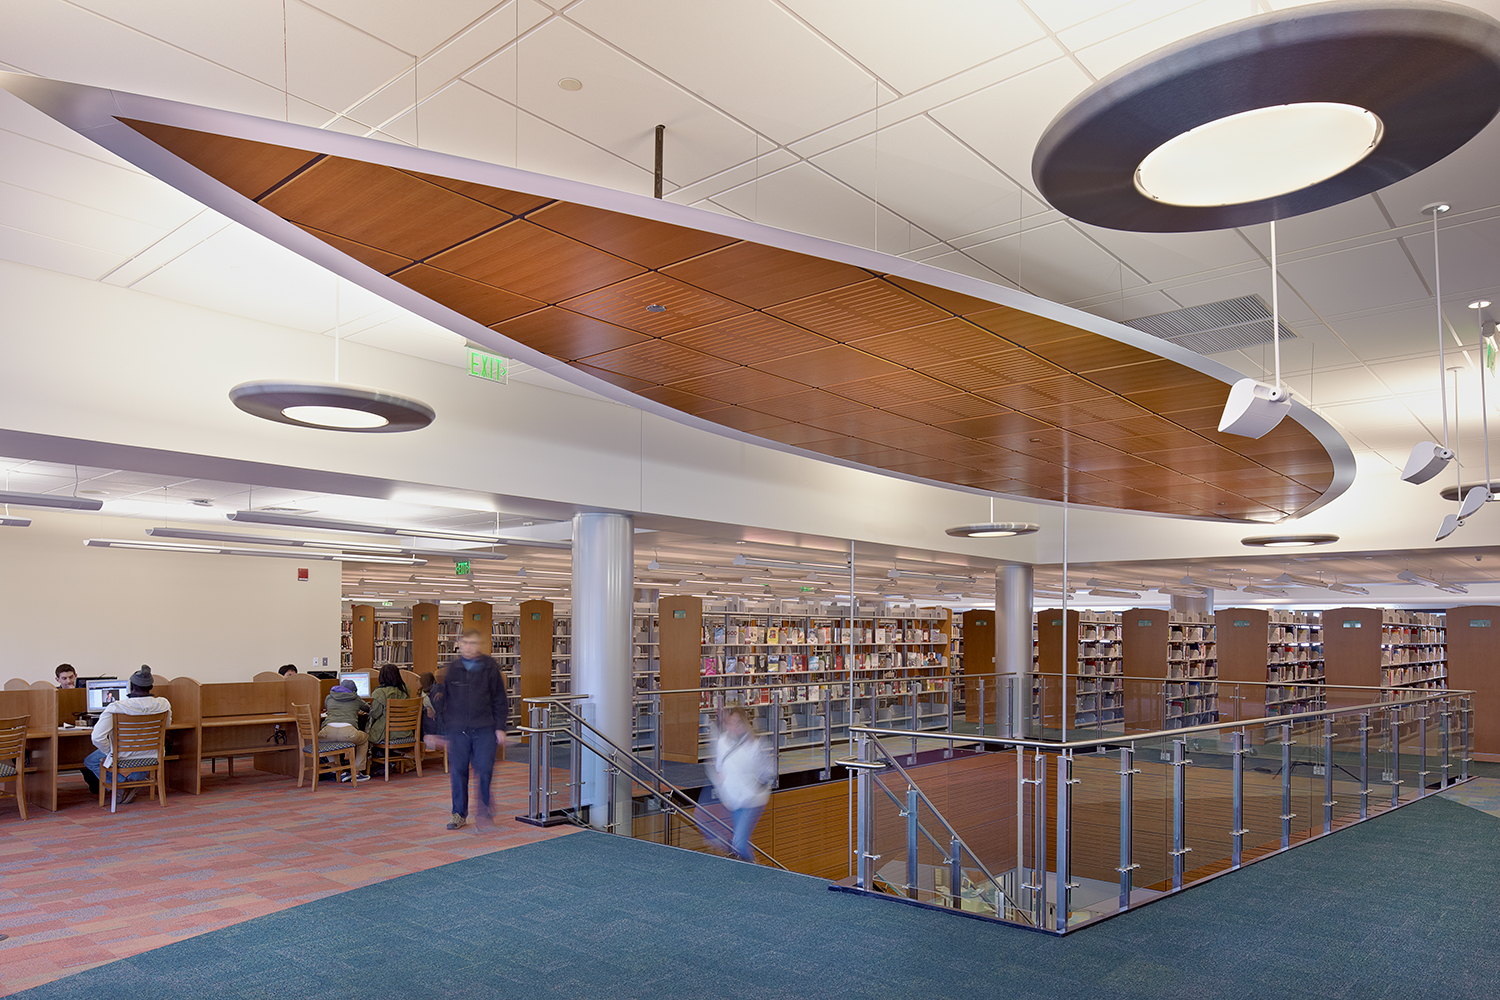 Aries pendants providing modern library lighting above a wide staircase as students study.